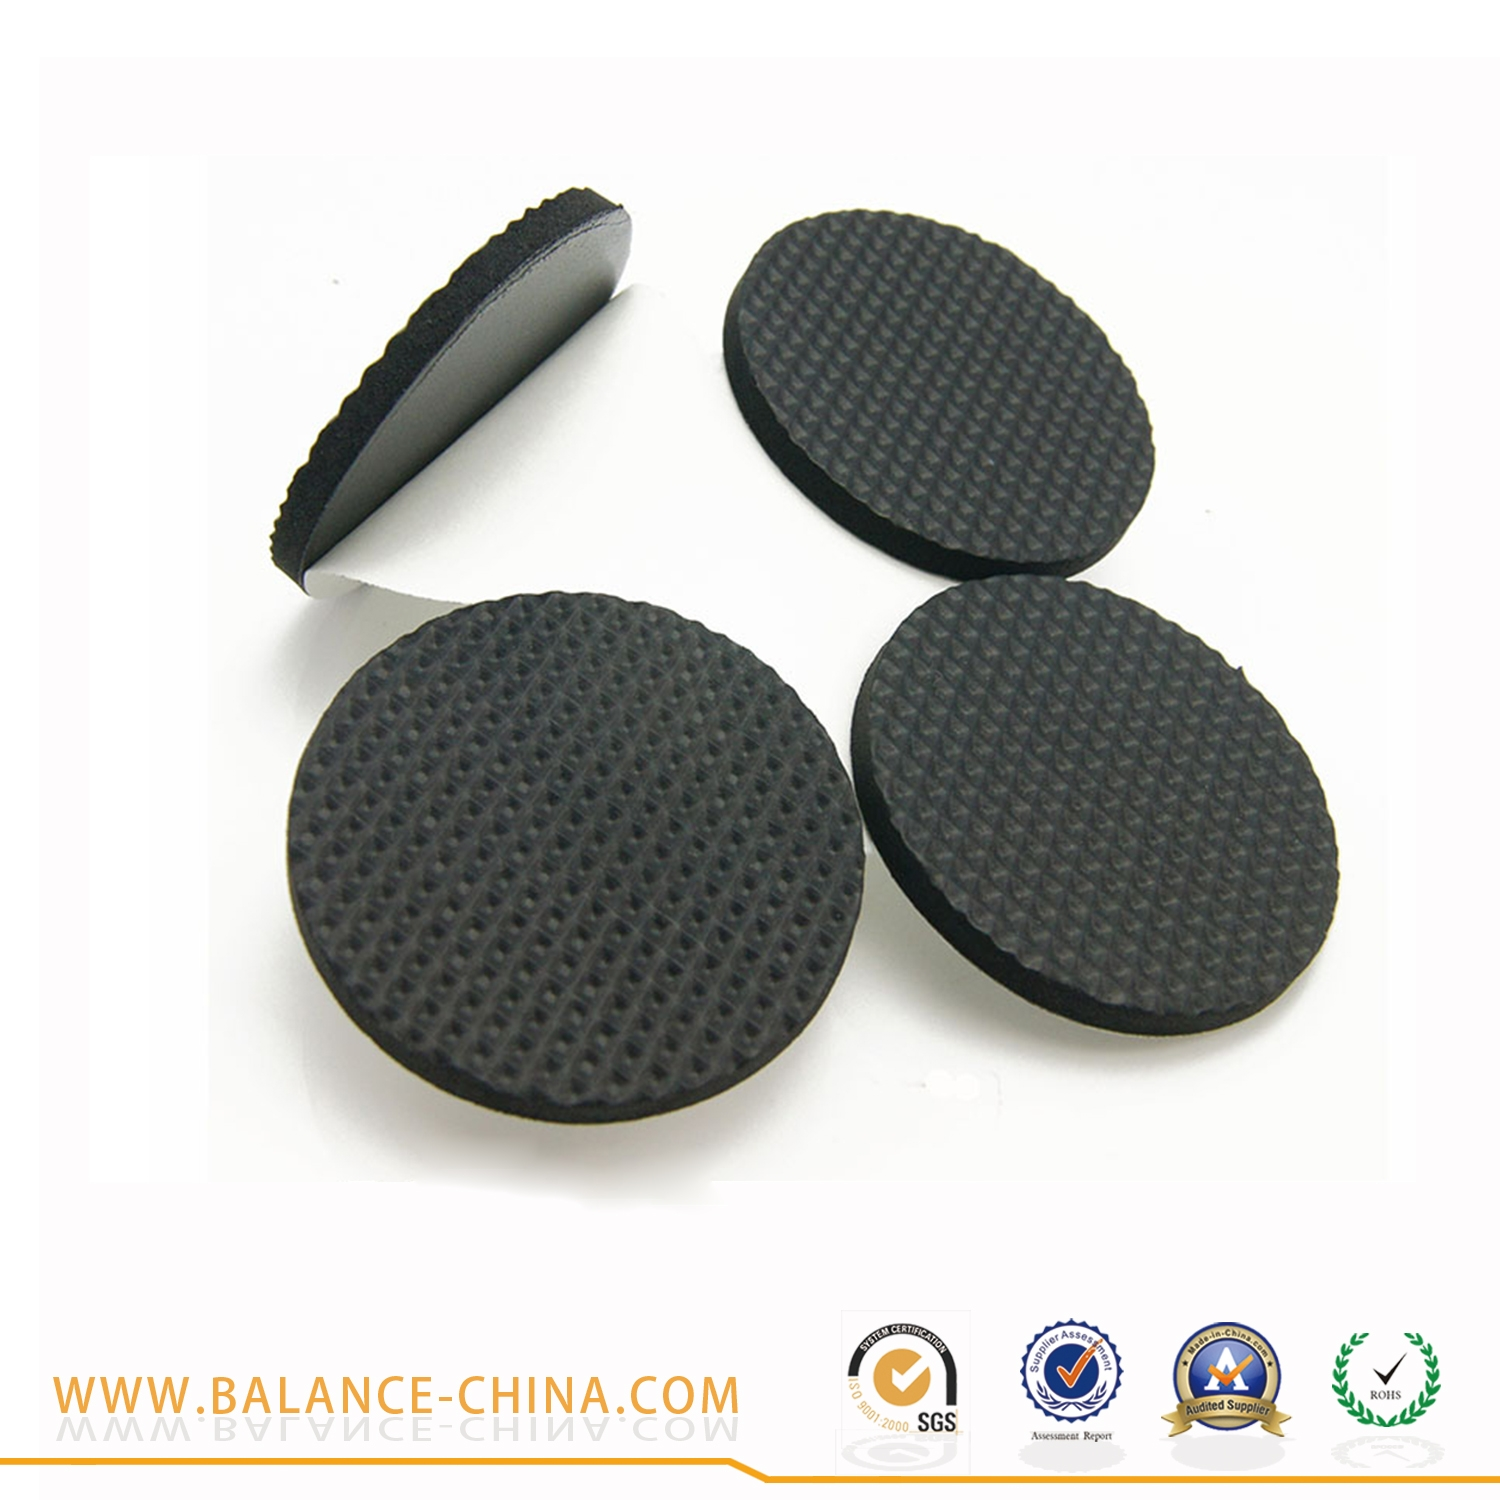 Eva Pad For Furniture Eva pad of Chinese suppliers Baby safety